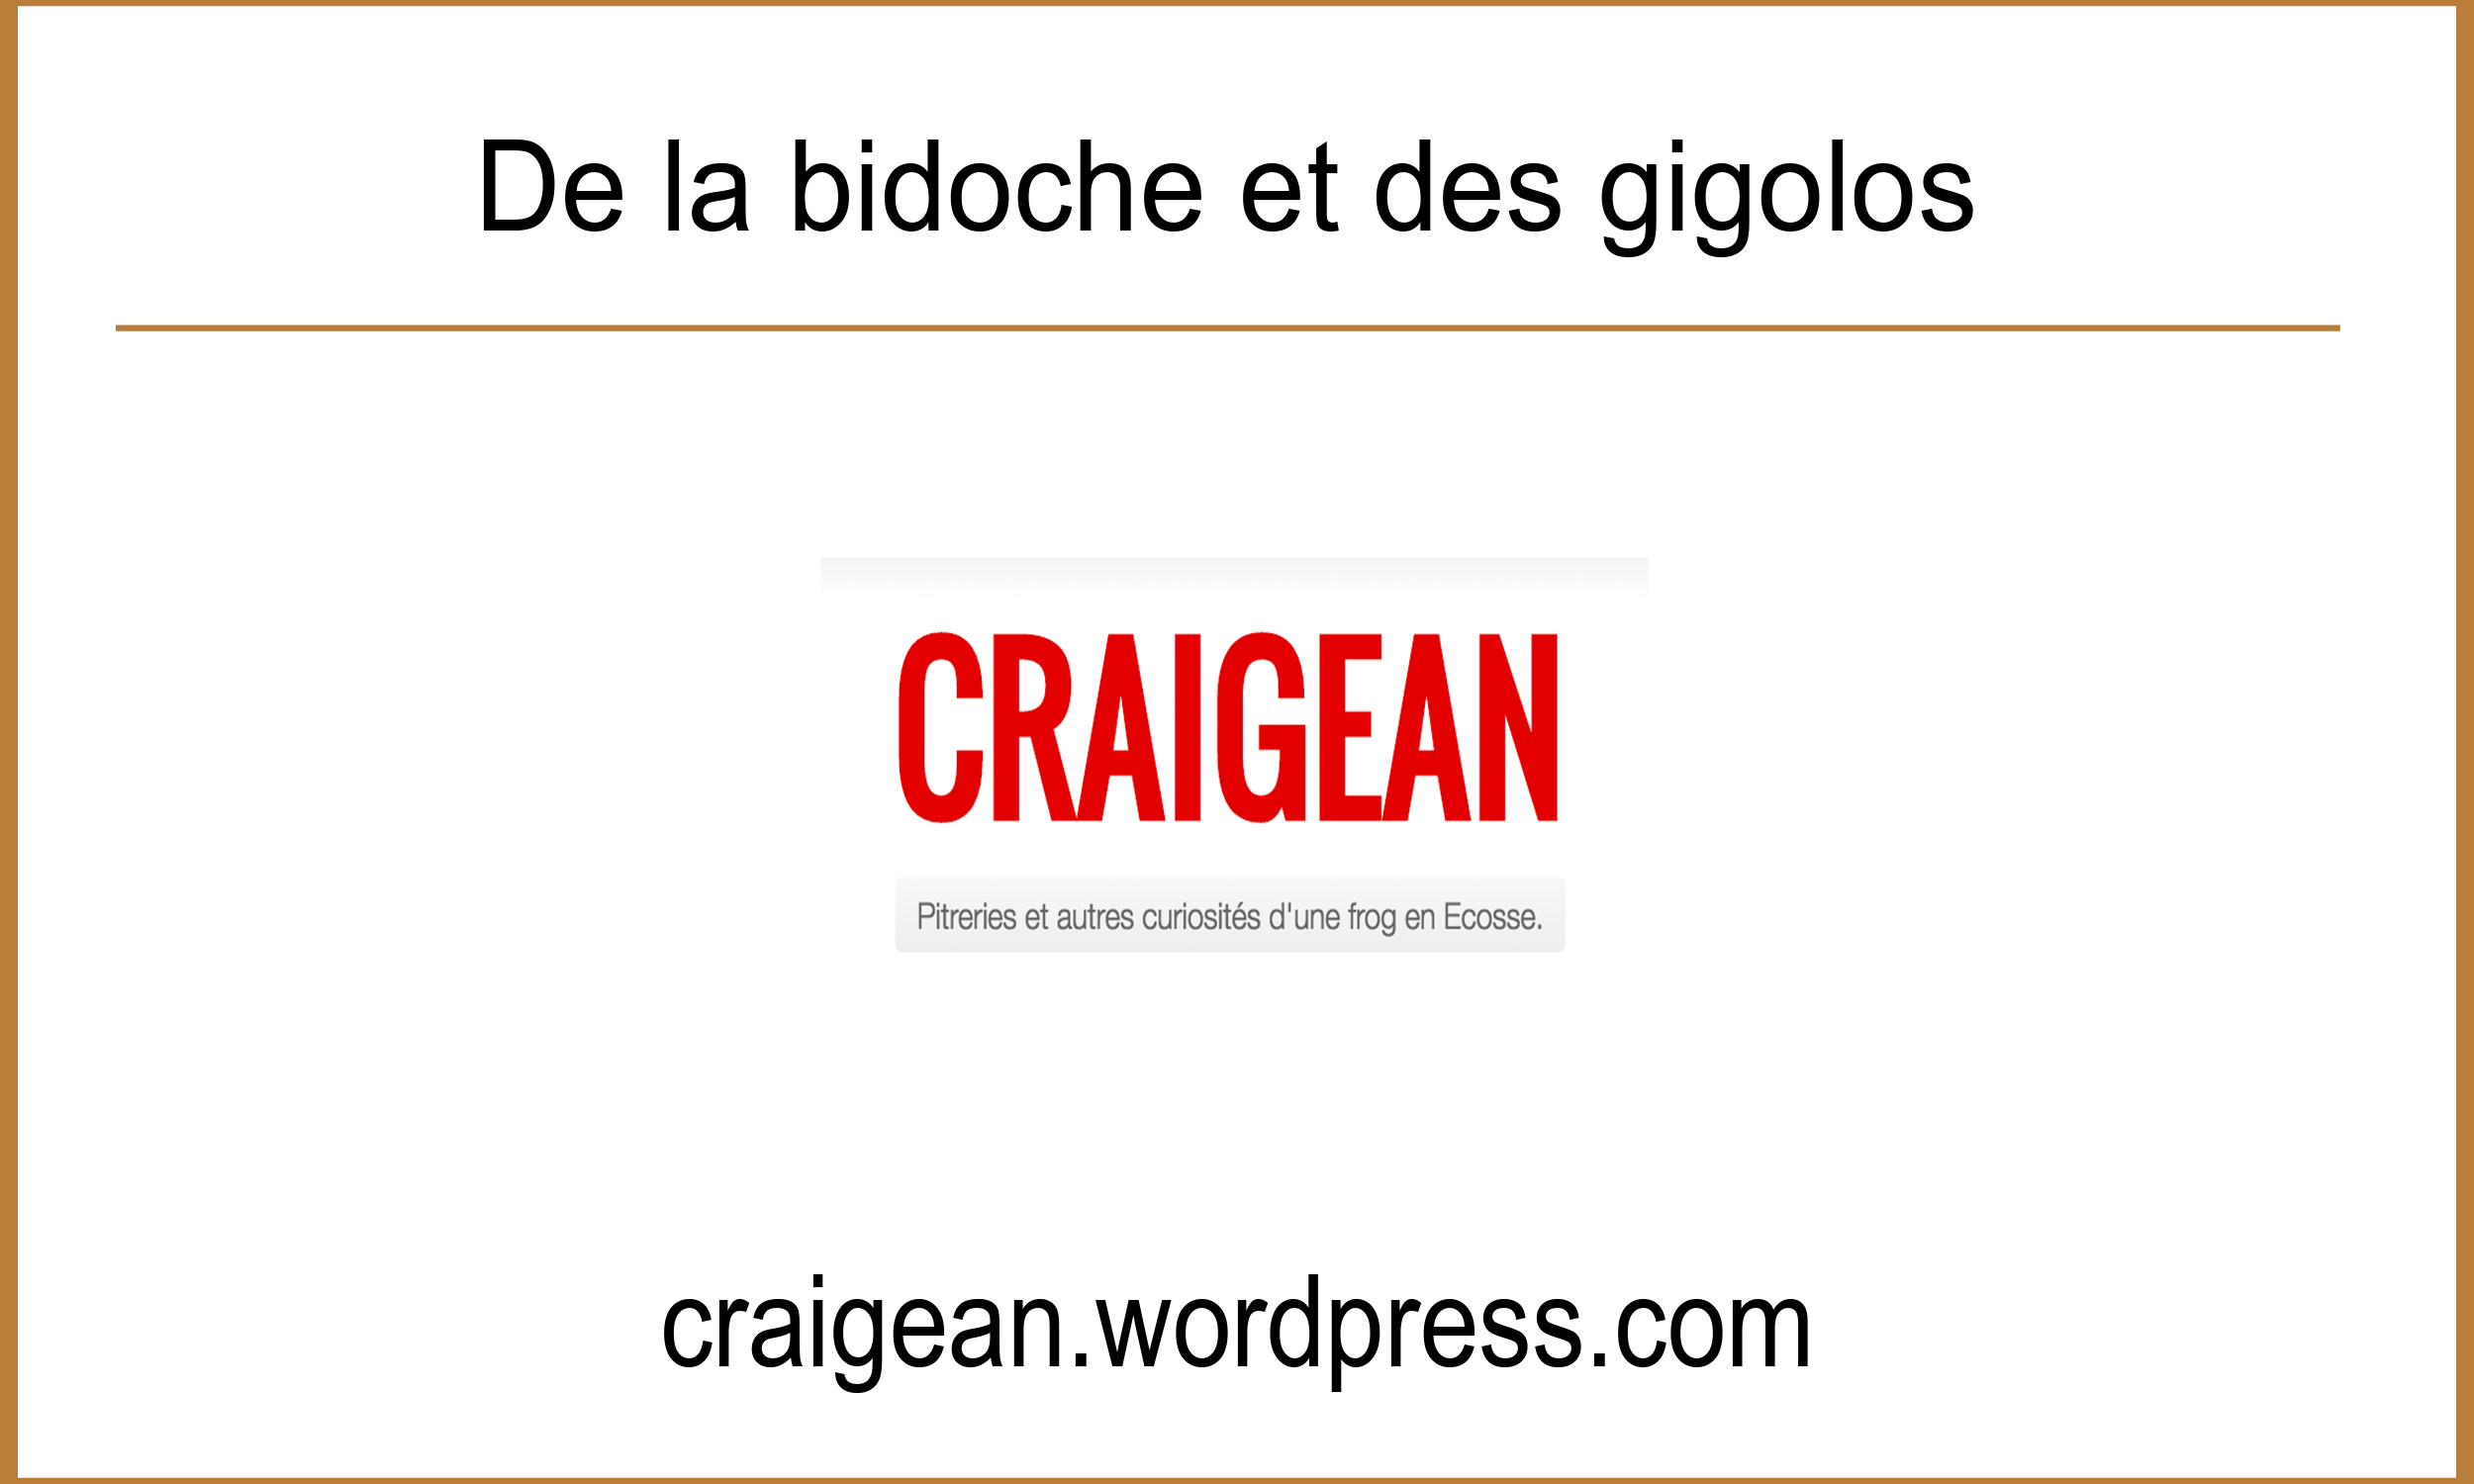 Article Craigean